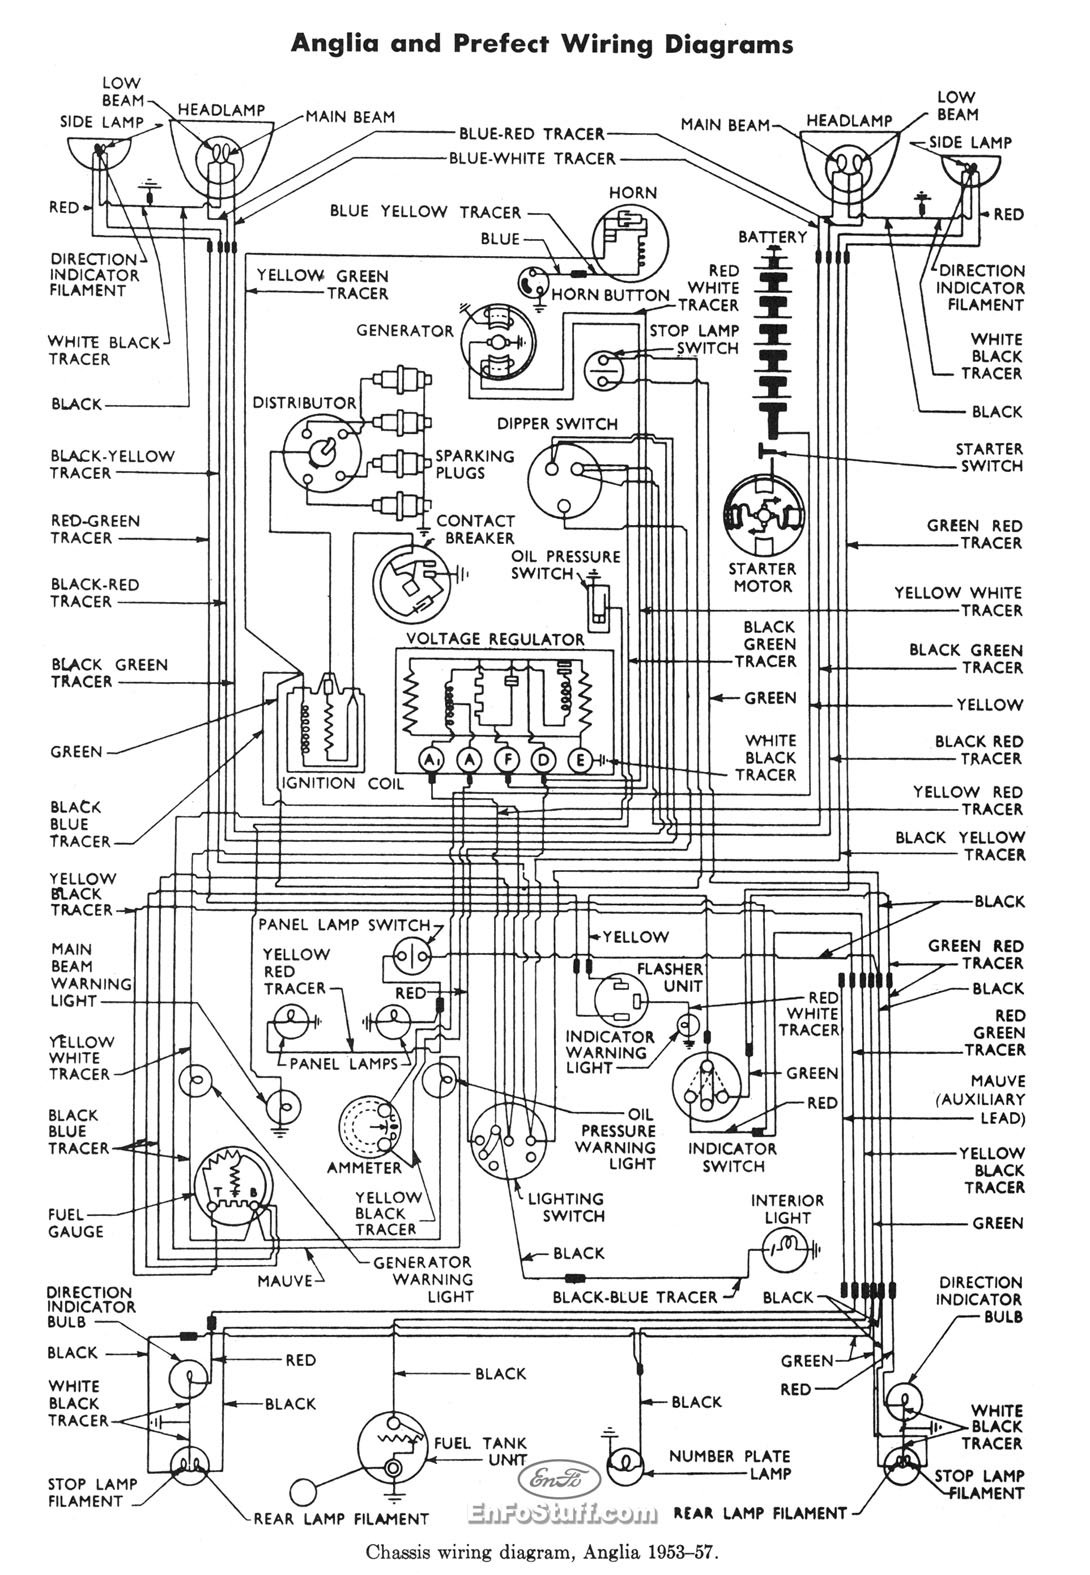 ford backhoe wiring diagrams download wiring diagrams u2022 rh sleeperfurniture co ford 555 backhoe wiring diagram Ford 555D Backhoe Parts Search